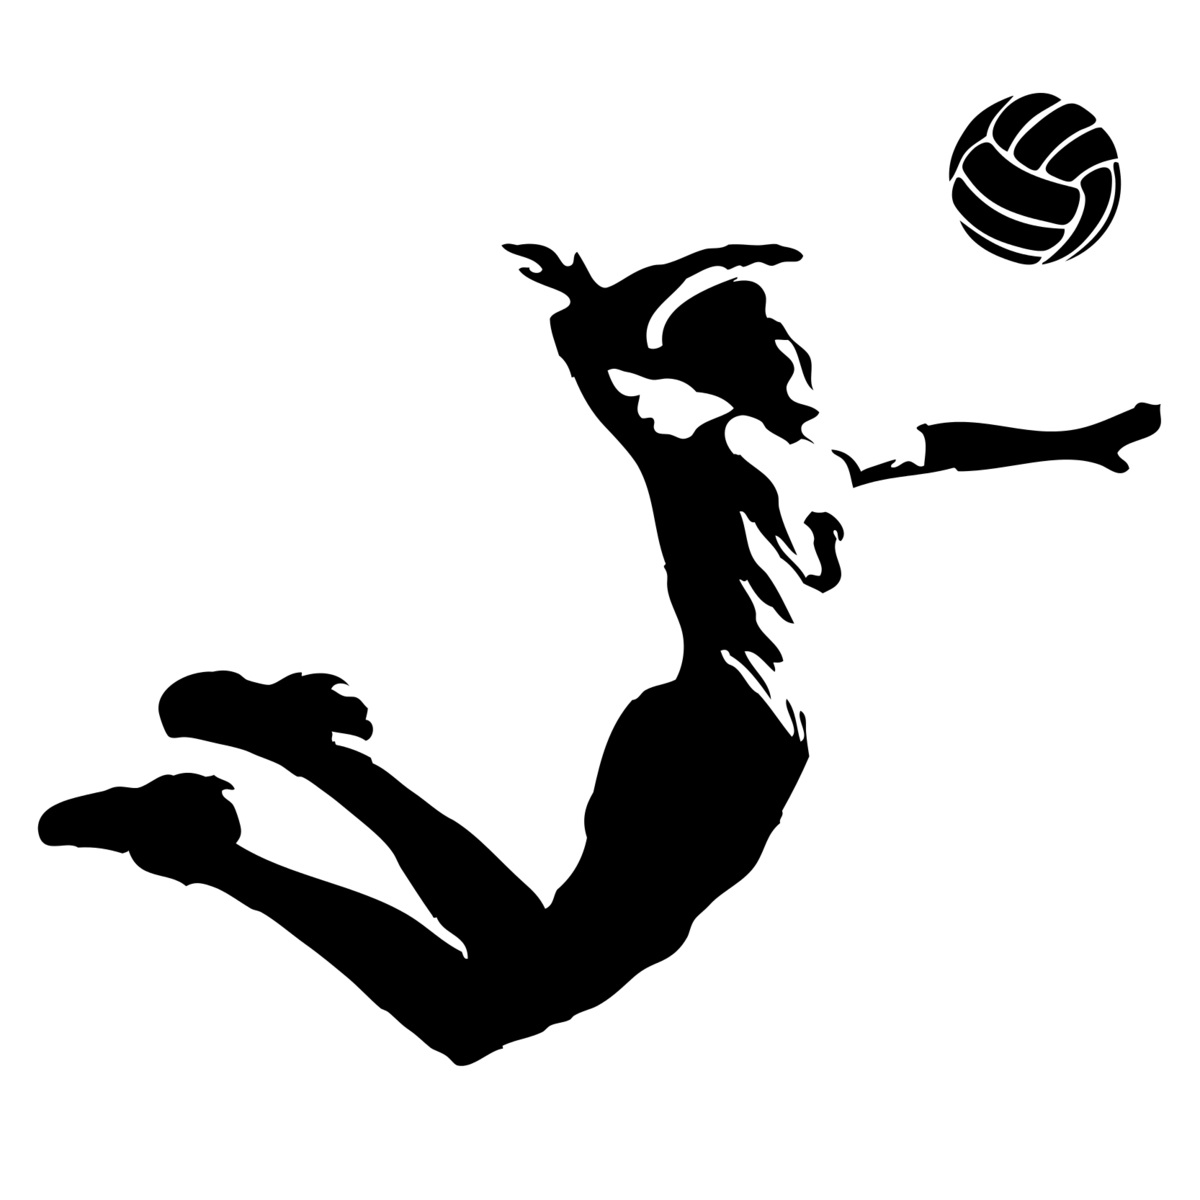 Breathtaking volleyball silhouette vector images